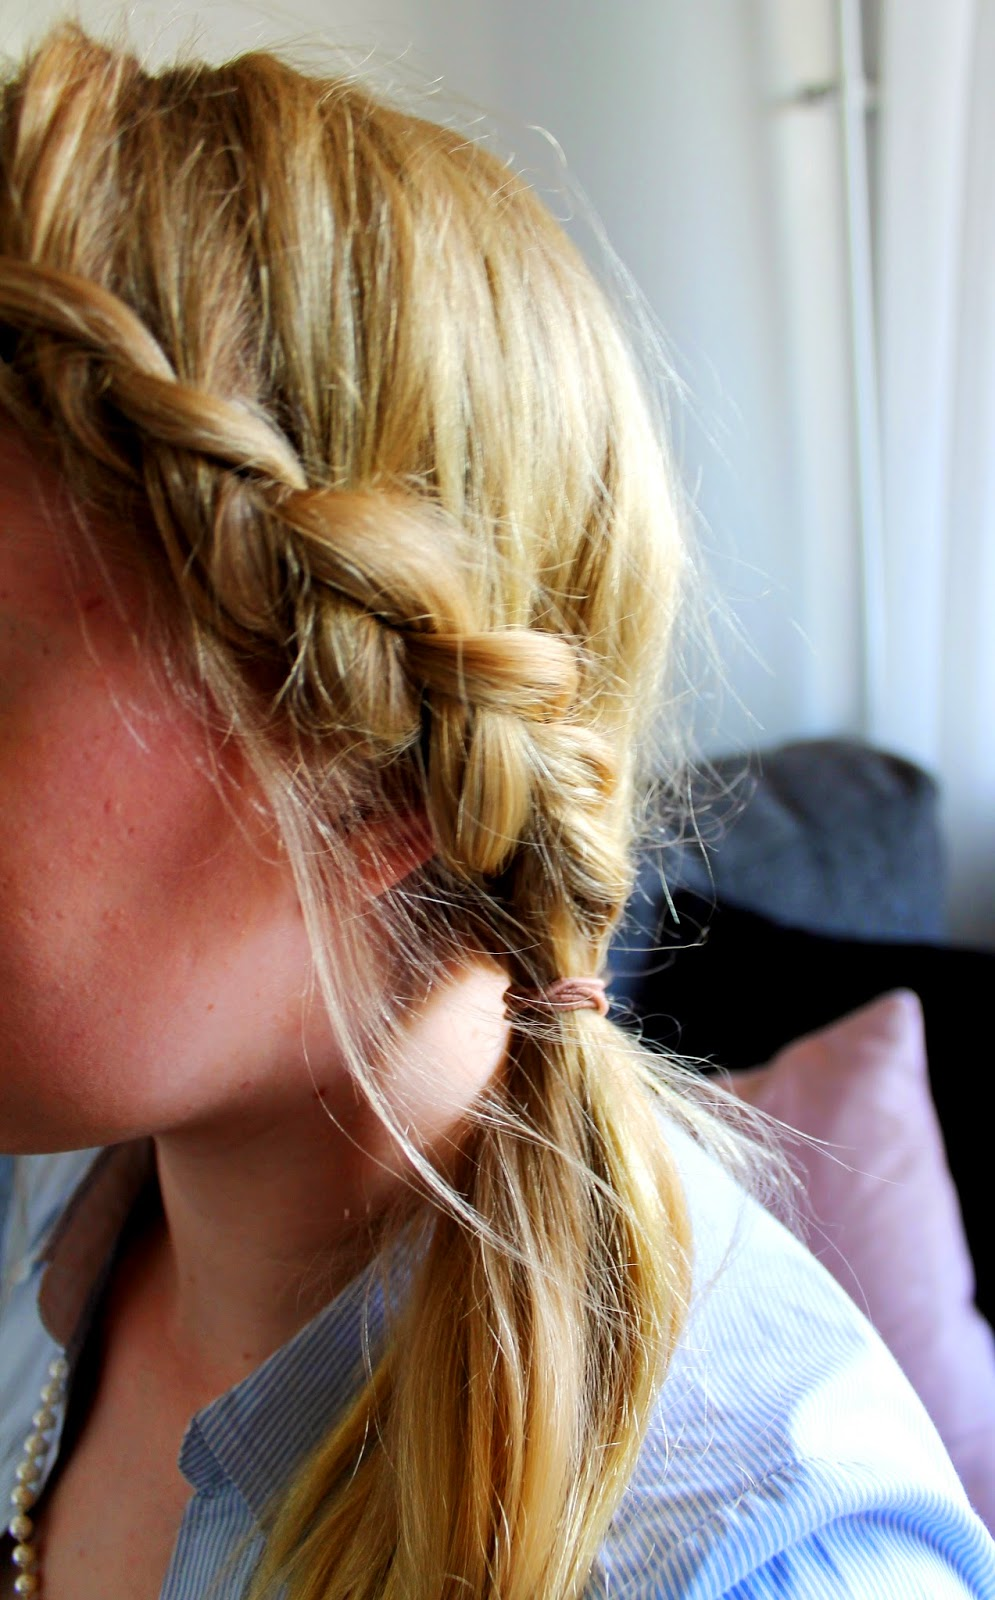 Game of thrones styled sidebraid | Alinan kotona blog